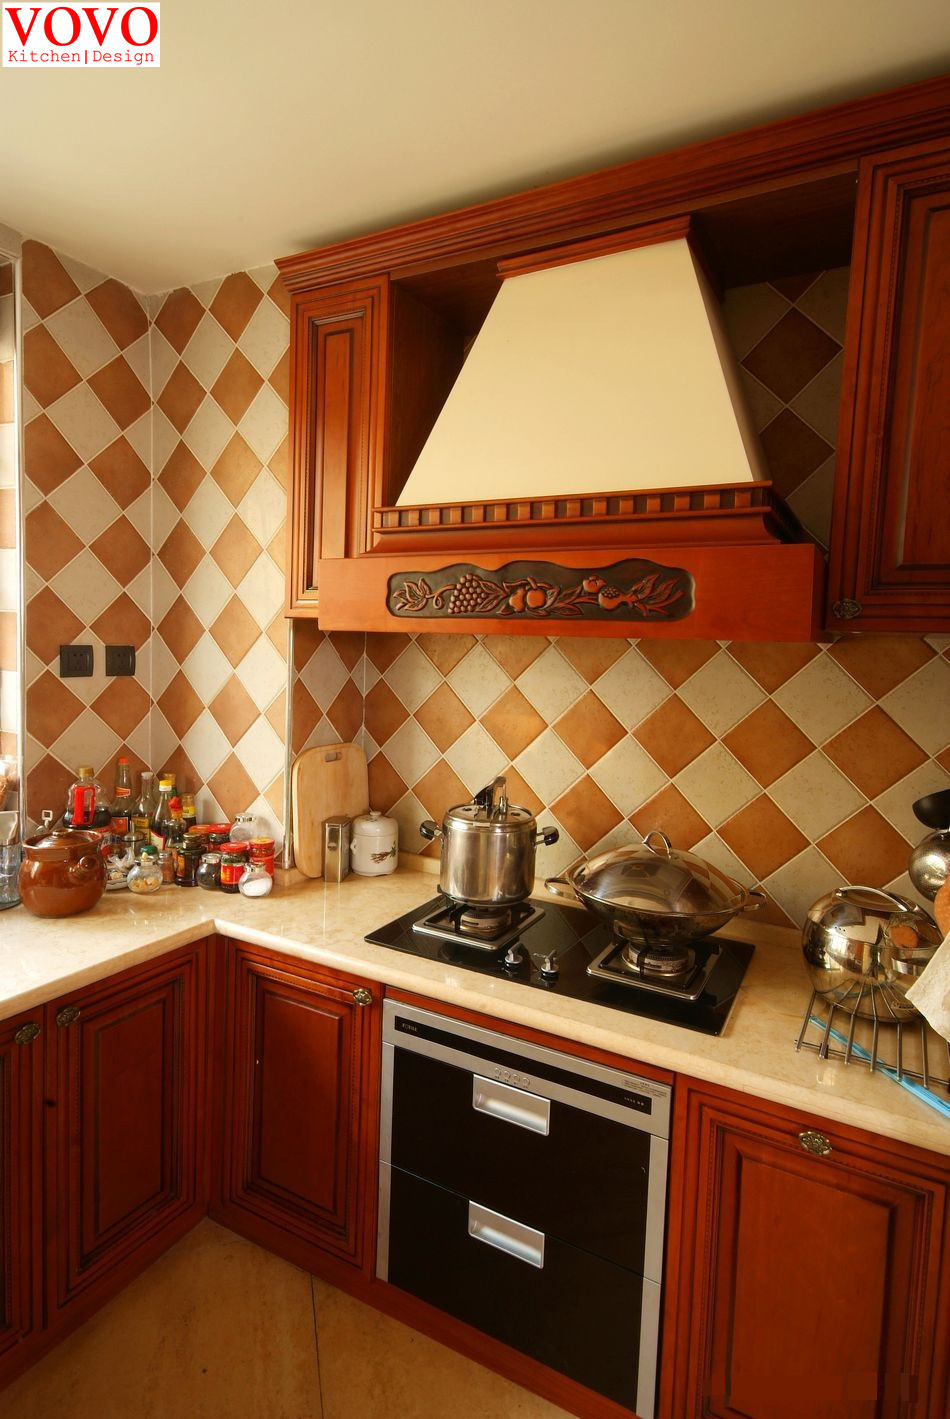 Red Glass Mosaic Tile Backsplash with Red Cherry Cabinets ... |Red Cherry Kitchen Cabinets